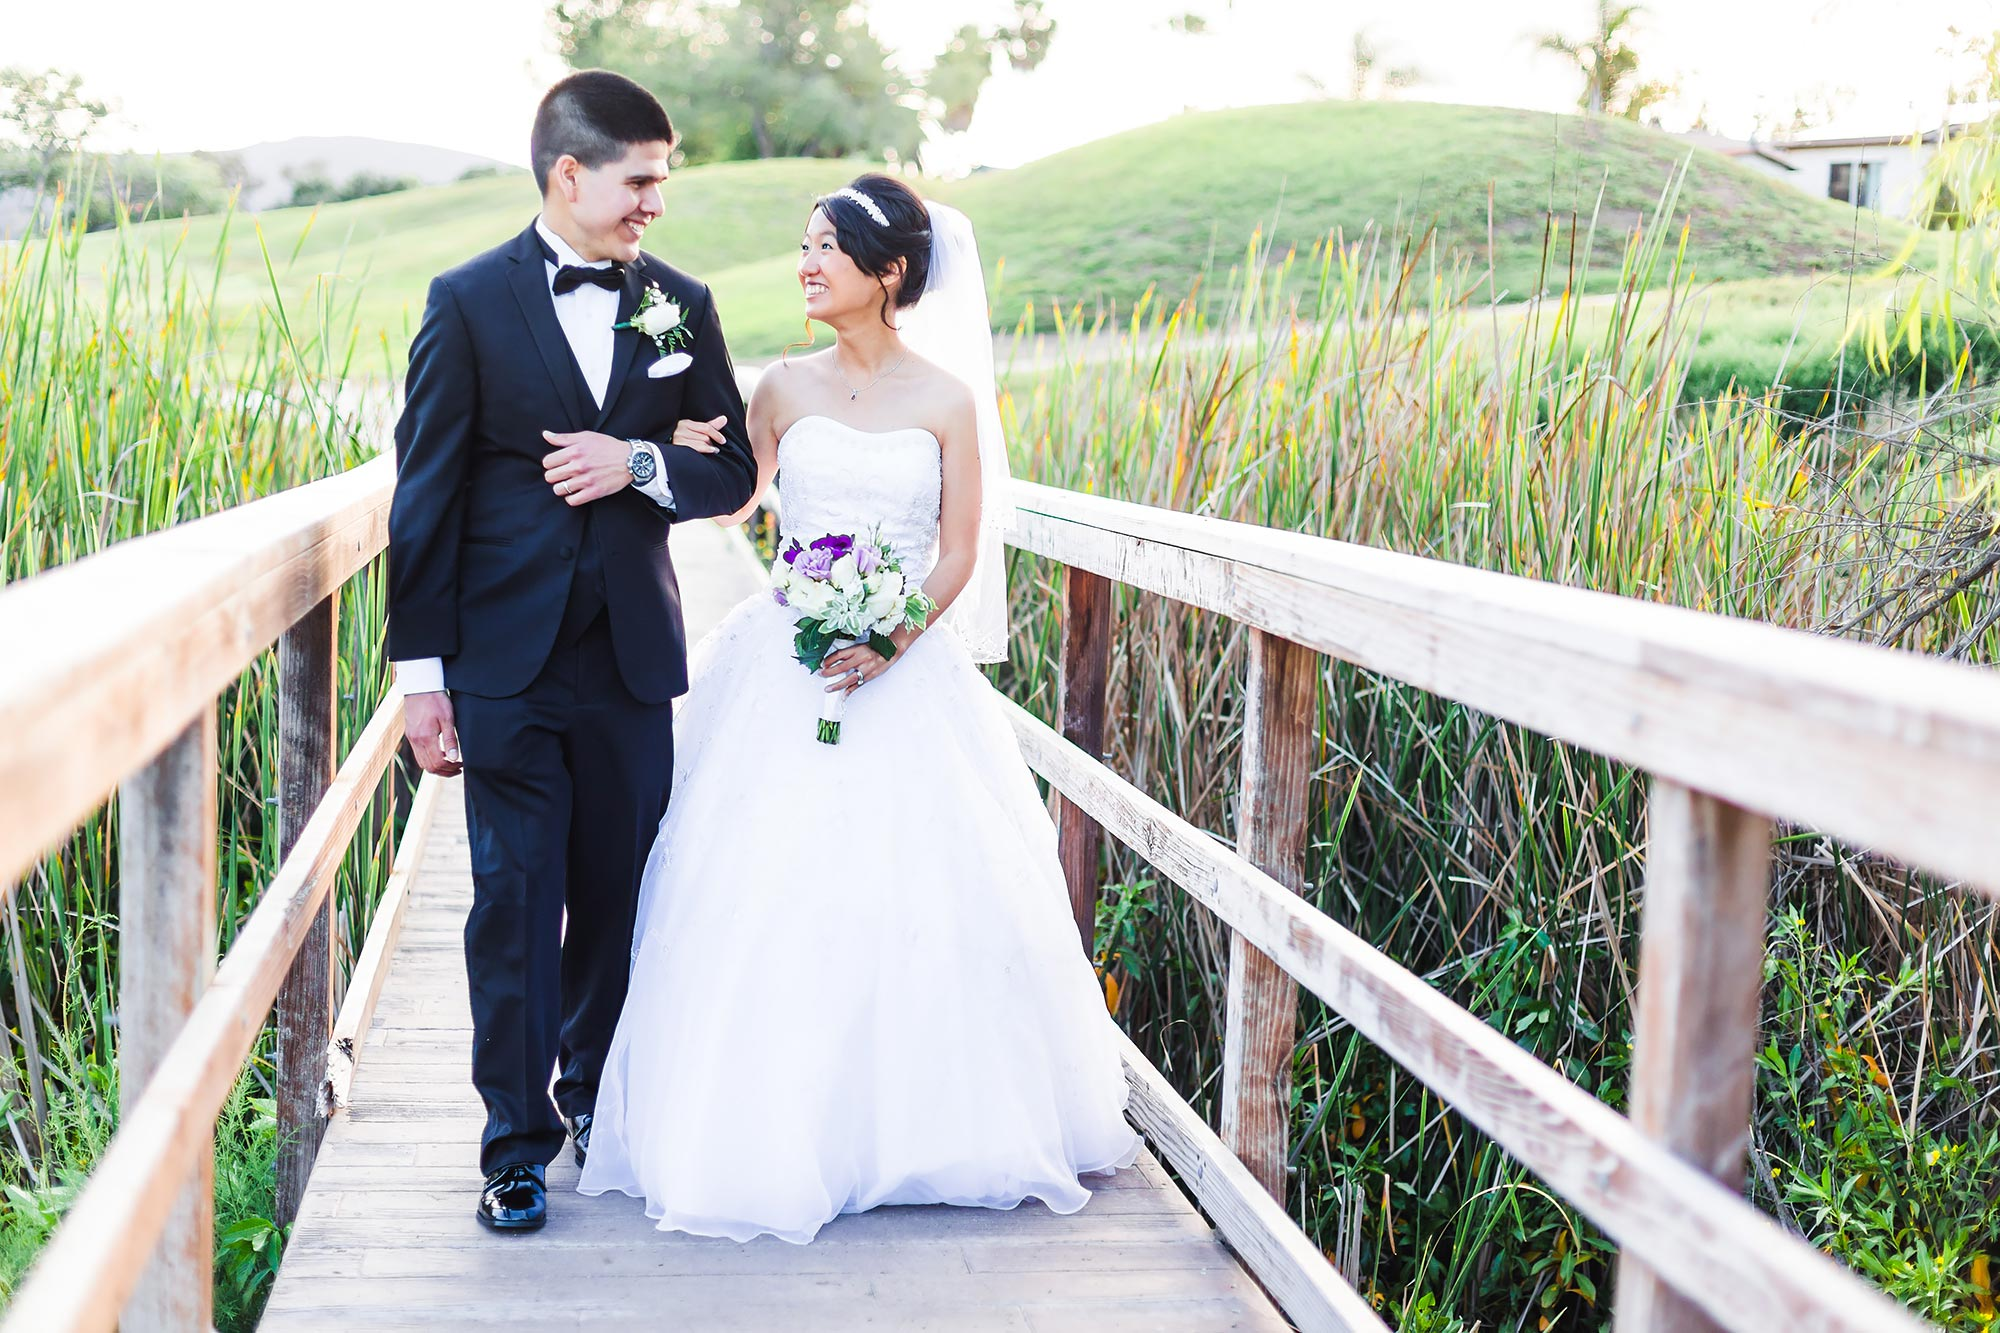 Ipswich Country Club Wedding Photographer | Stephen Grant Photography